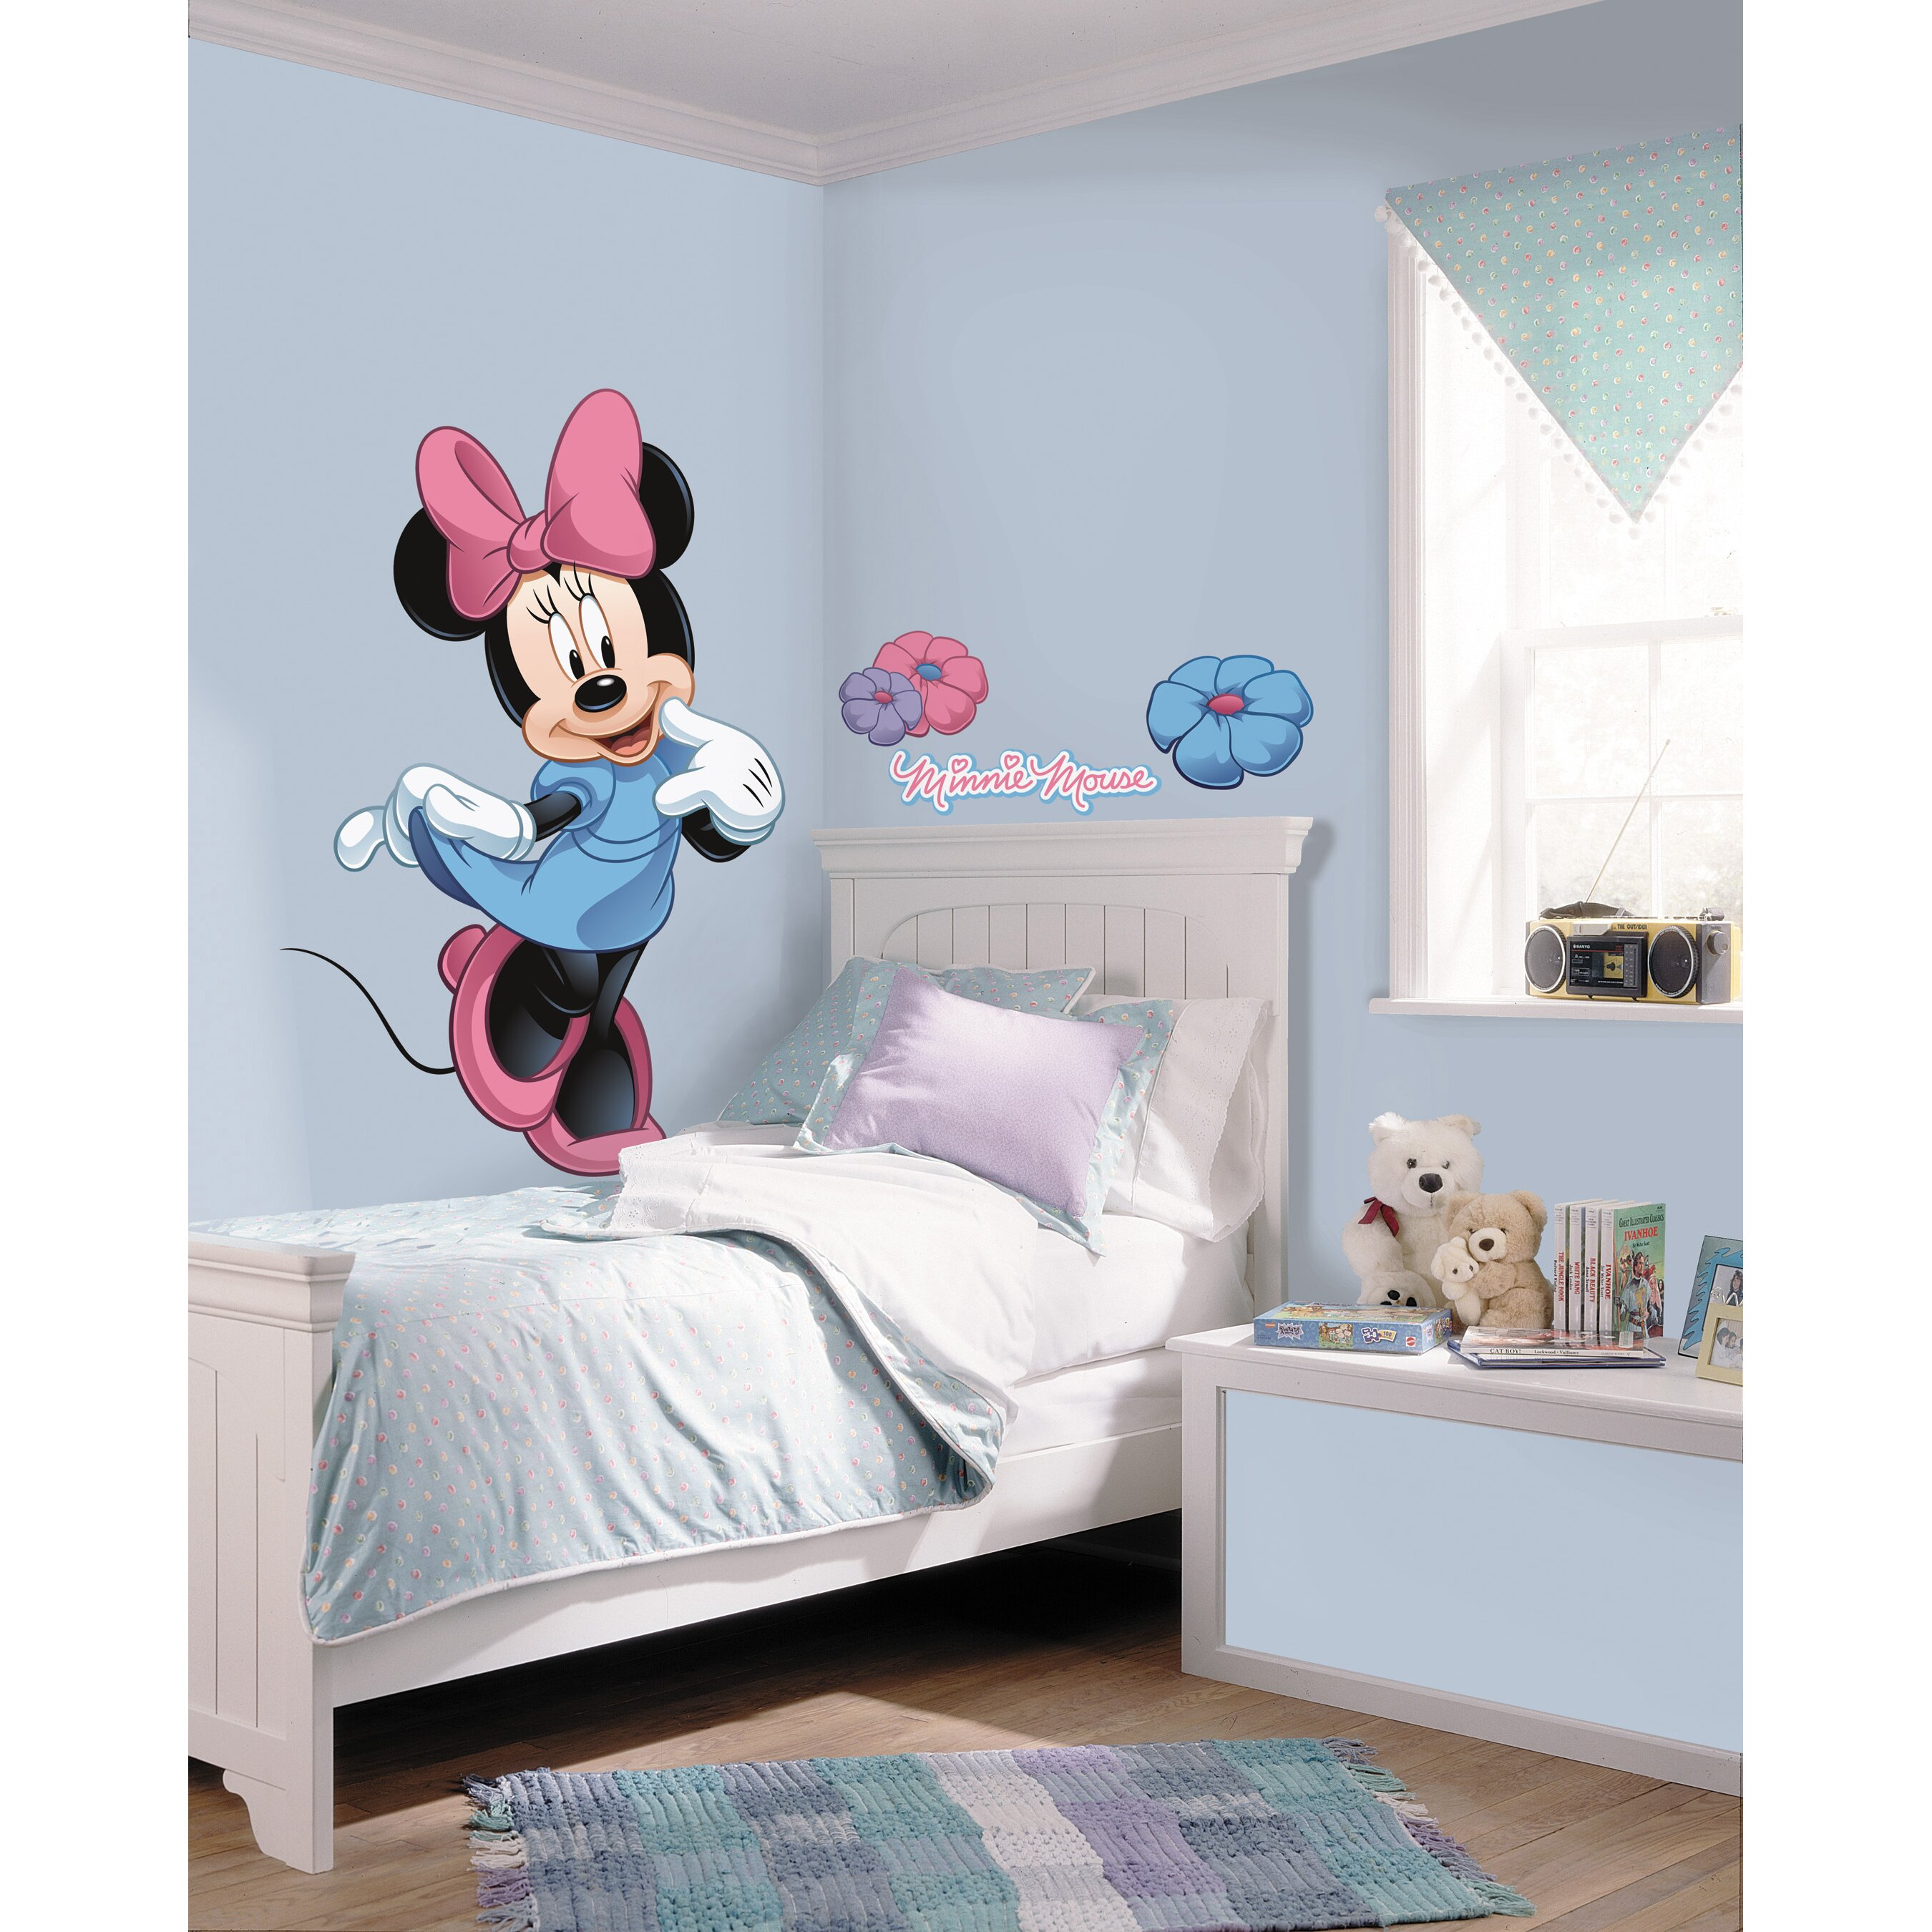 room mates mickey and friends minnie mouse wall decal. Black Bedroom Furniture Sets. Home Design Ideas